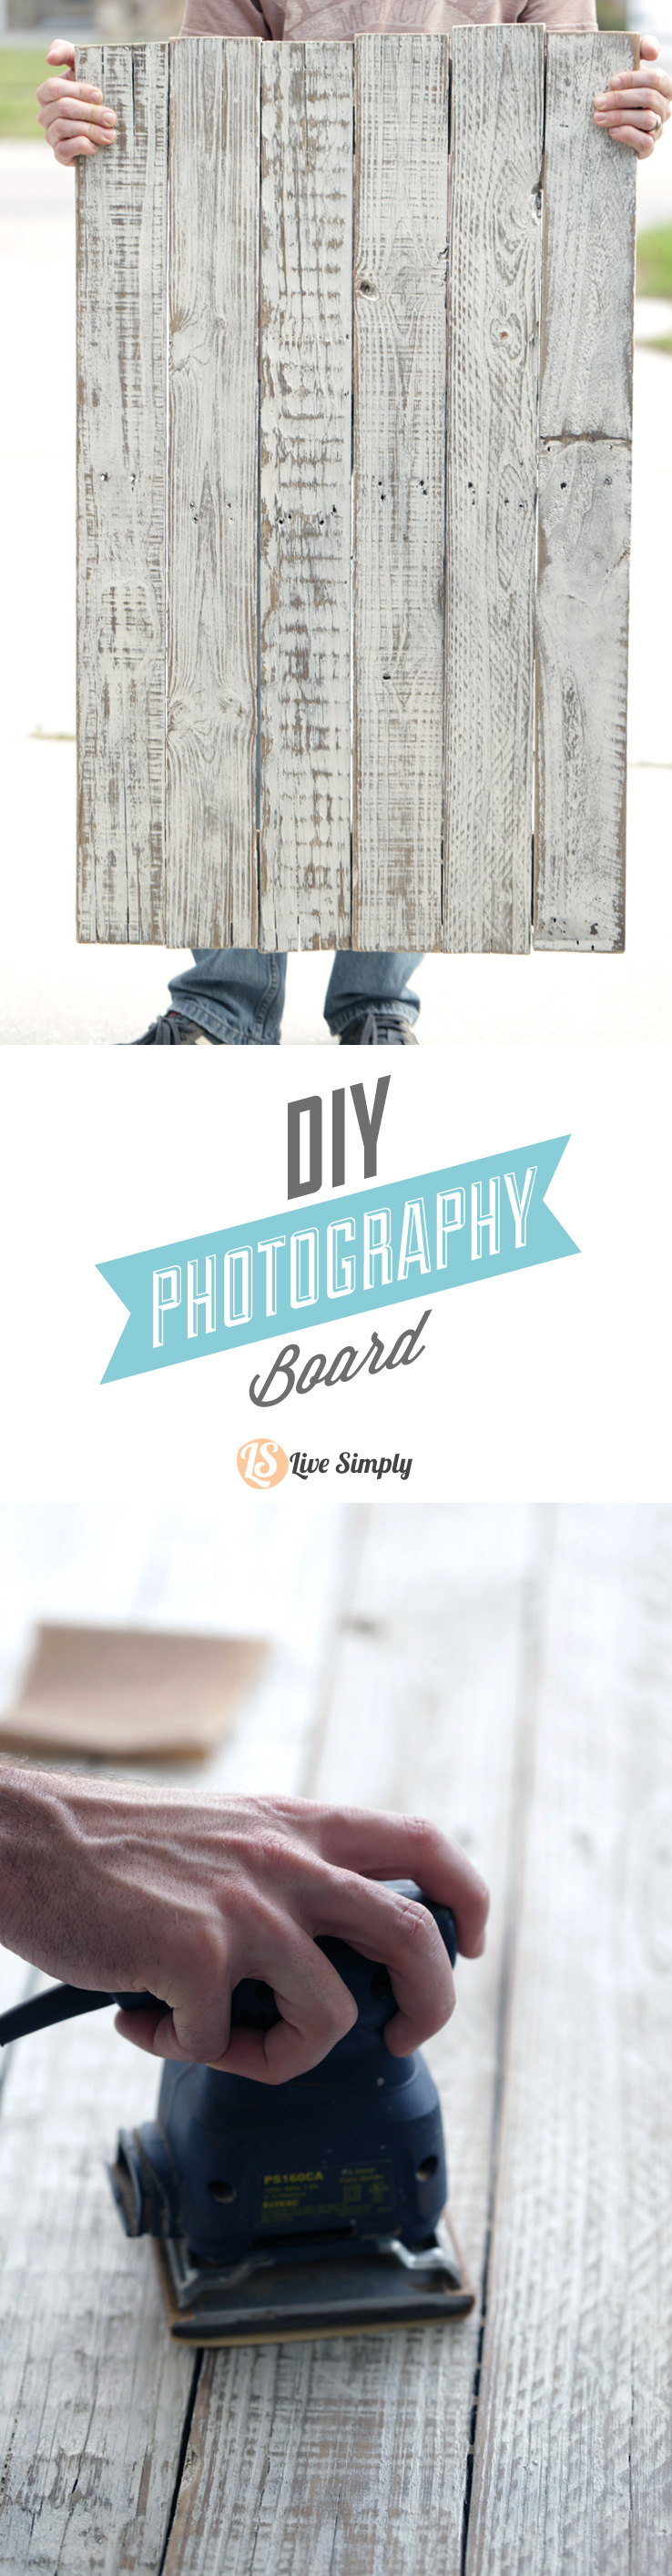 How to make a DIY Photography Board in three simple steps! This tutorial is so easy to follow and produces a gorgeous two-sided photography board! http://livesimply.me/2015/03/13/how-to-make-a-diy-photography-board/